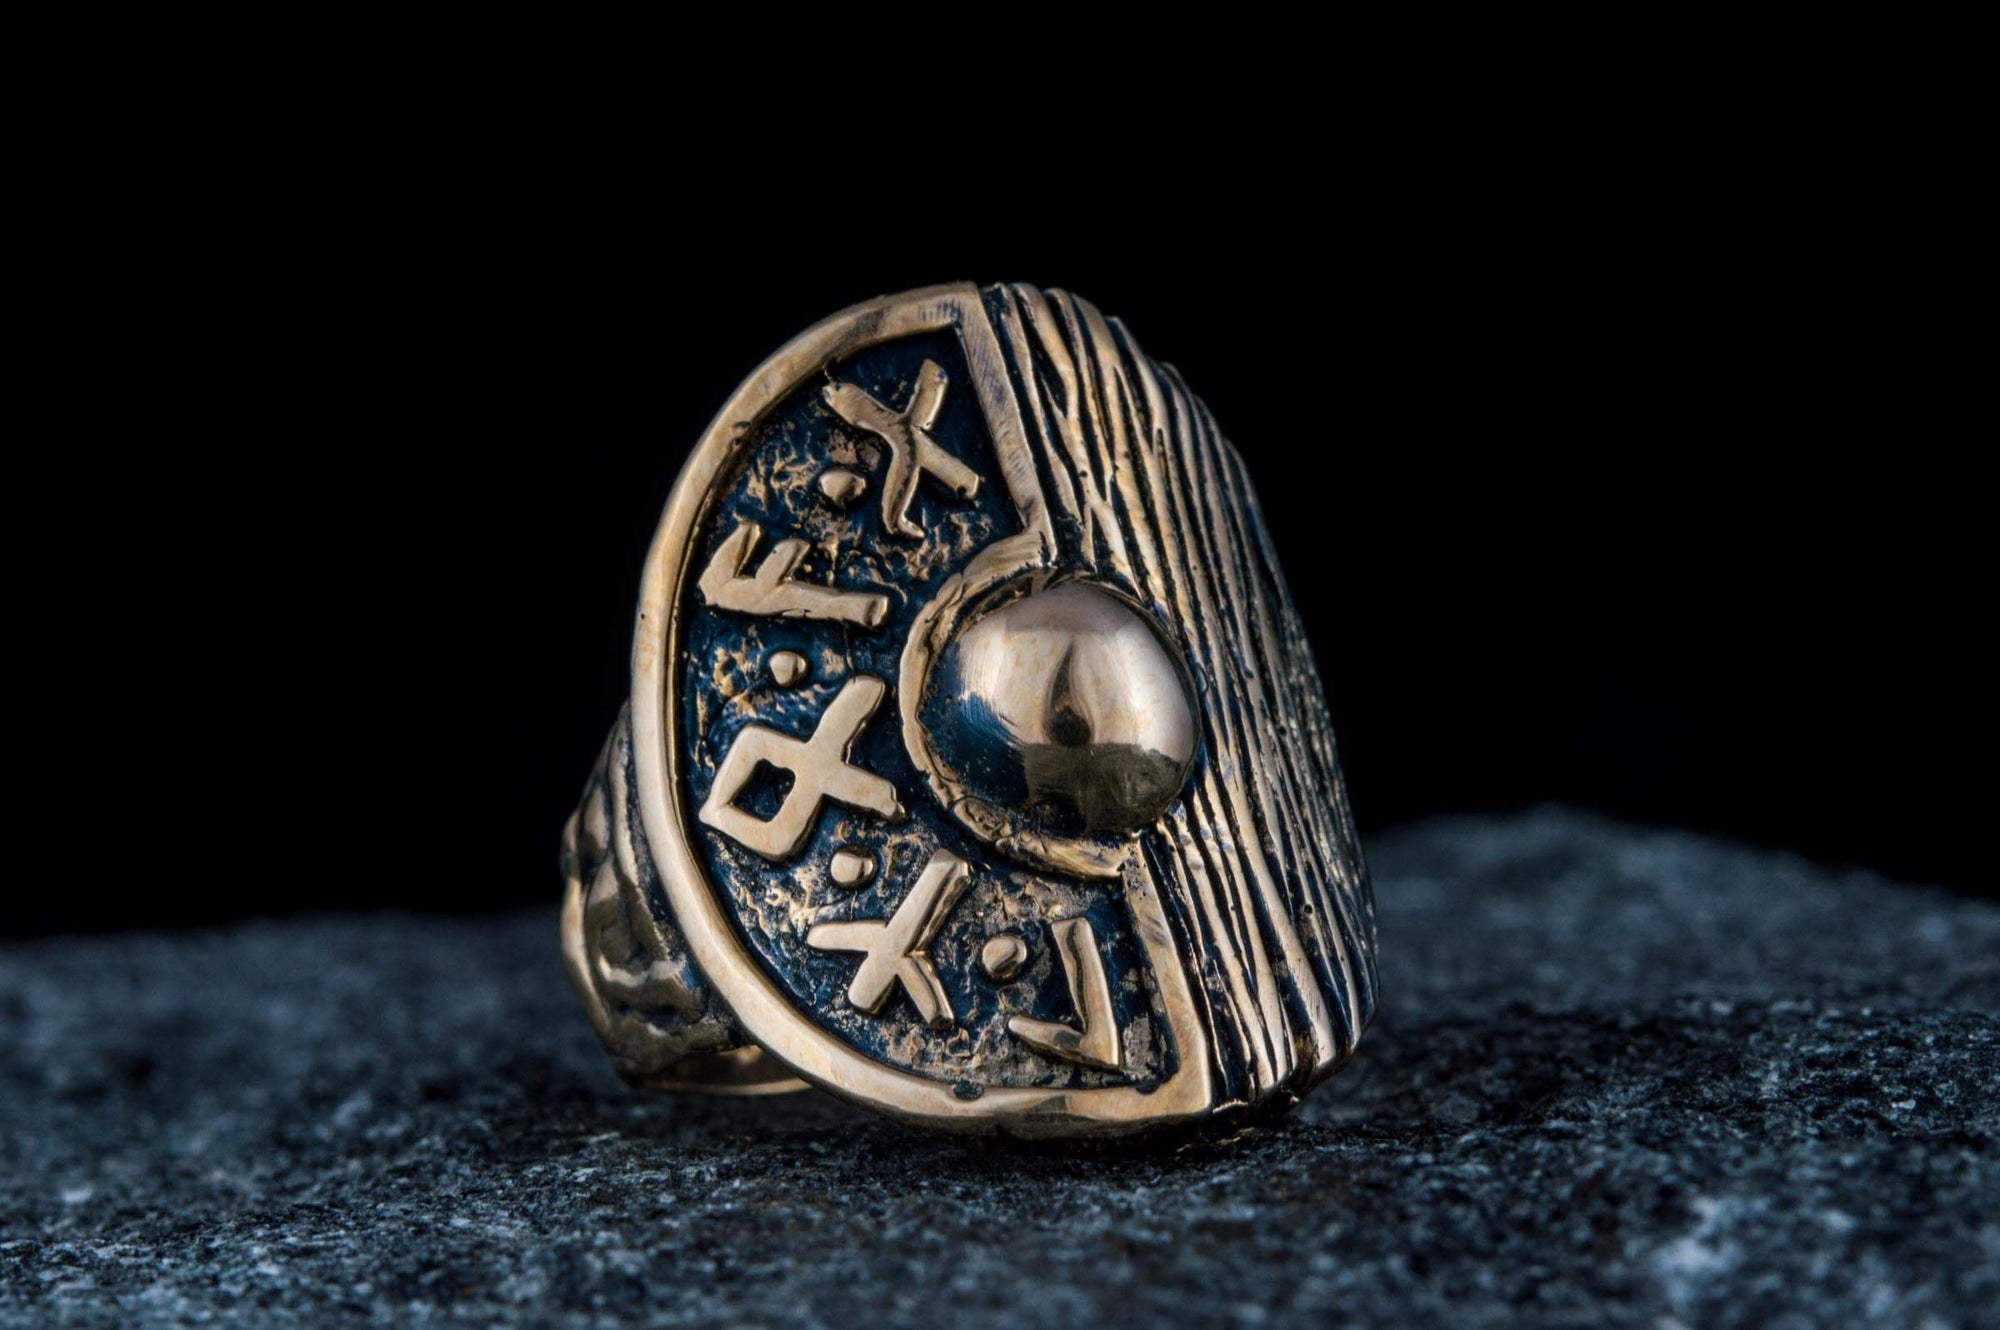 Rings Bronze / US 7 Vikings Wood Textured & Runes Handcrafted Shield Ring Ancient Treasures Ancientreasures Viking Odin Thor Mjolnir Celtic Ancient Egypt Norse Norse Mythology